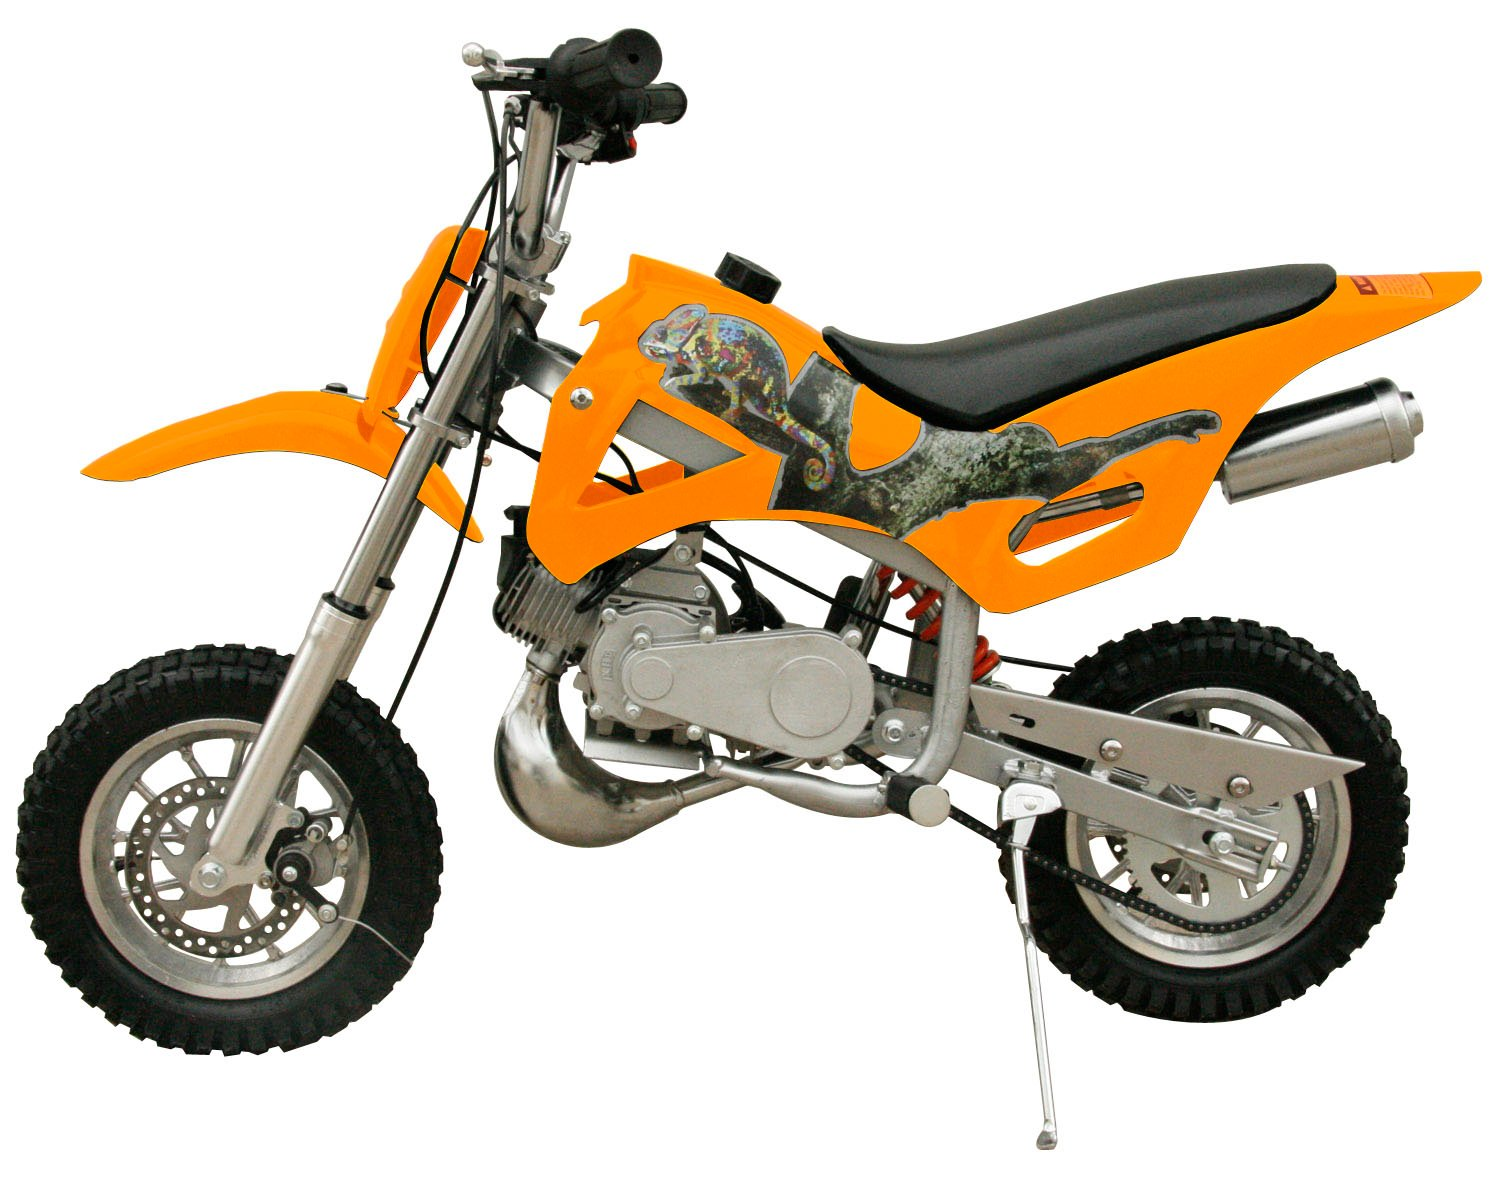 Flying Horse 49cc 50cc 2 Stroke Gas Powered Mini Dirt White Honda Pit Bike Motorcycle Kids Motocross Automotive